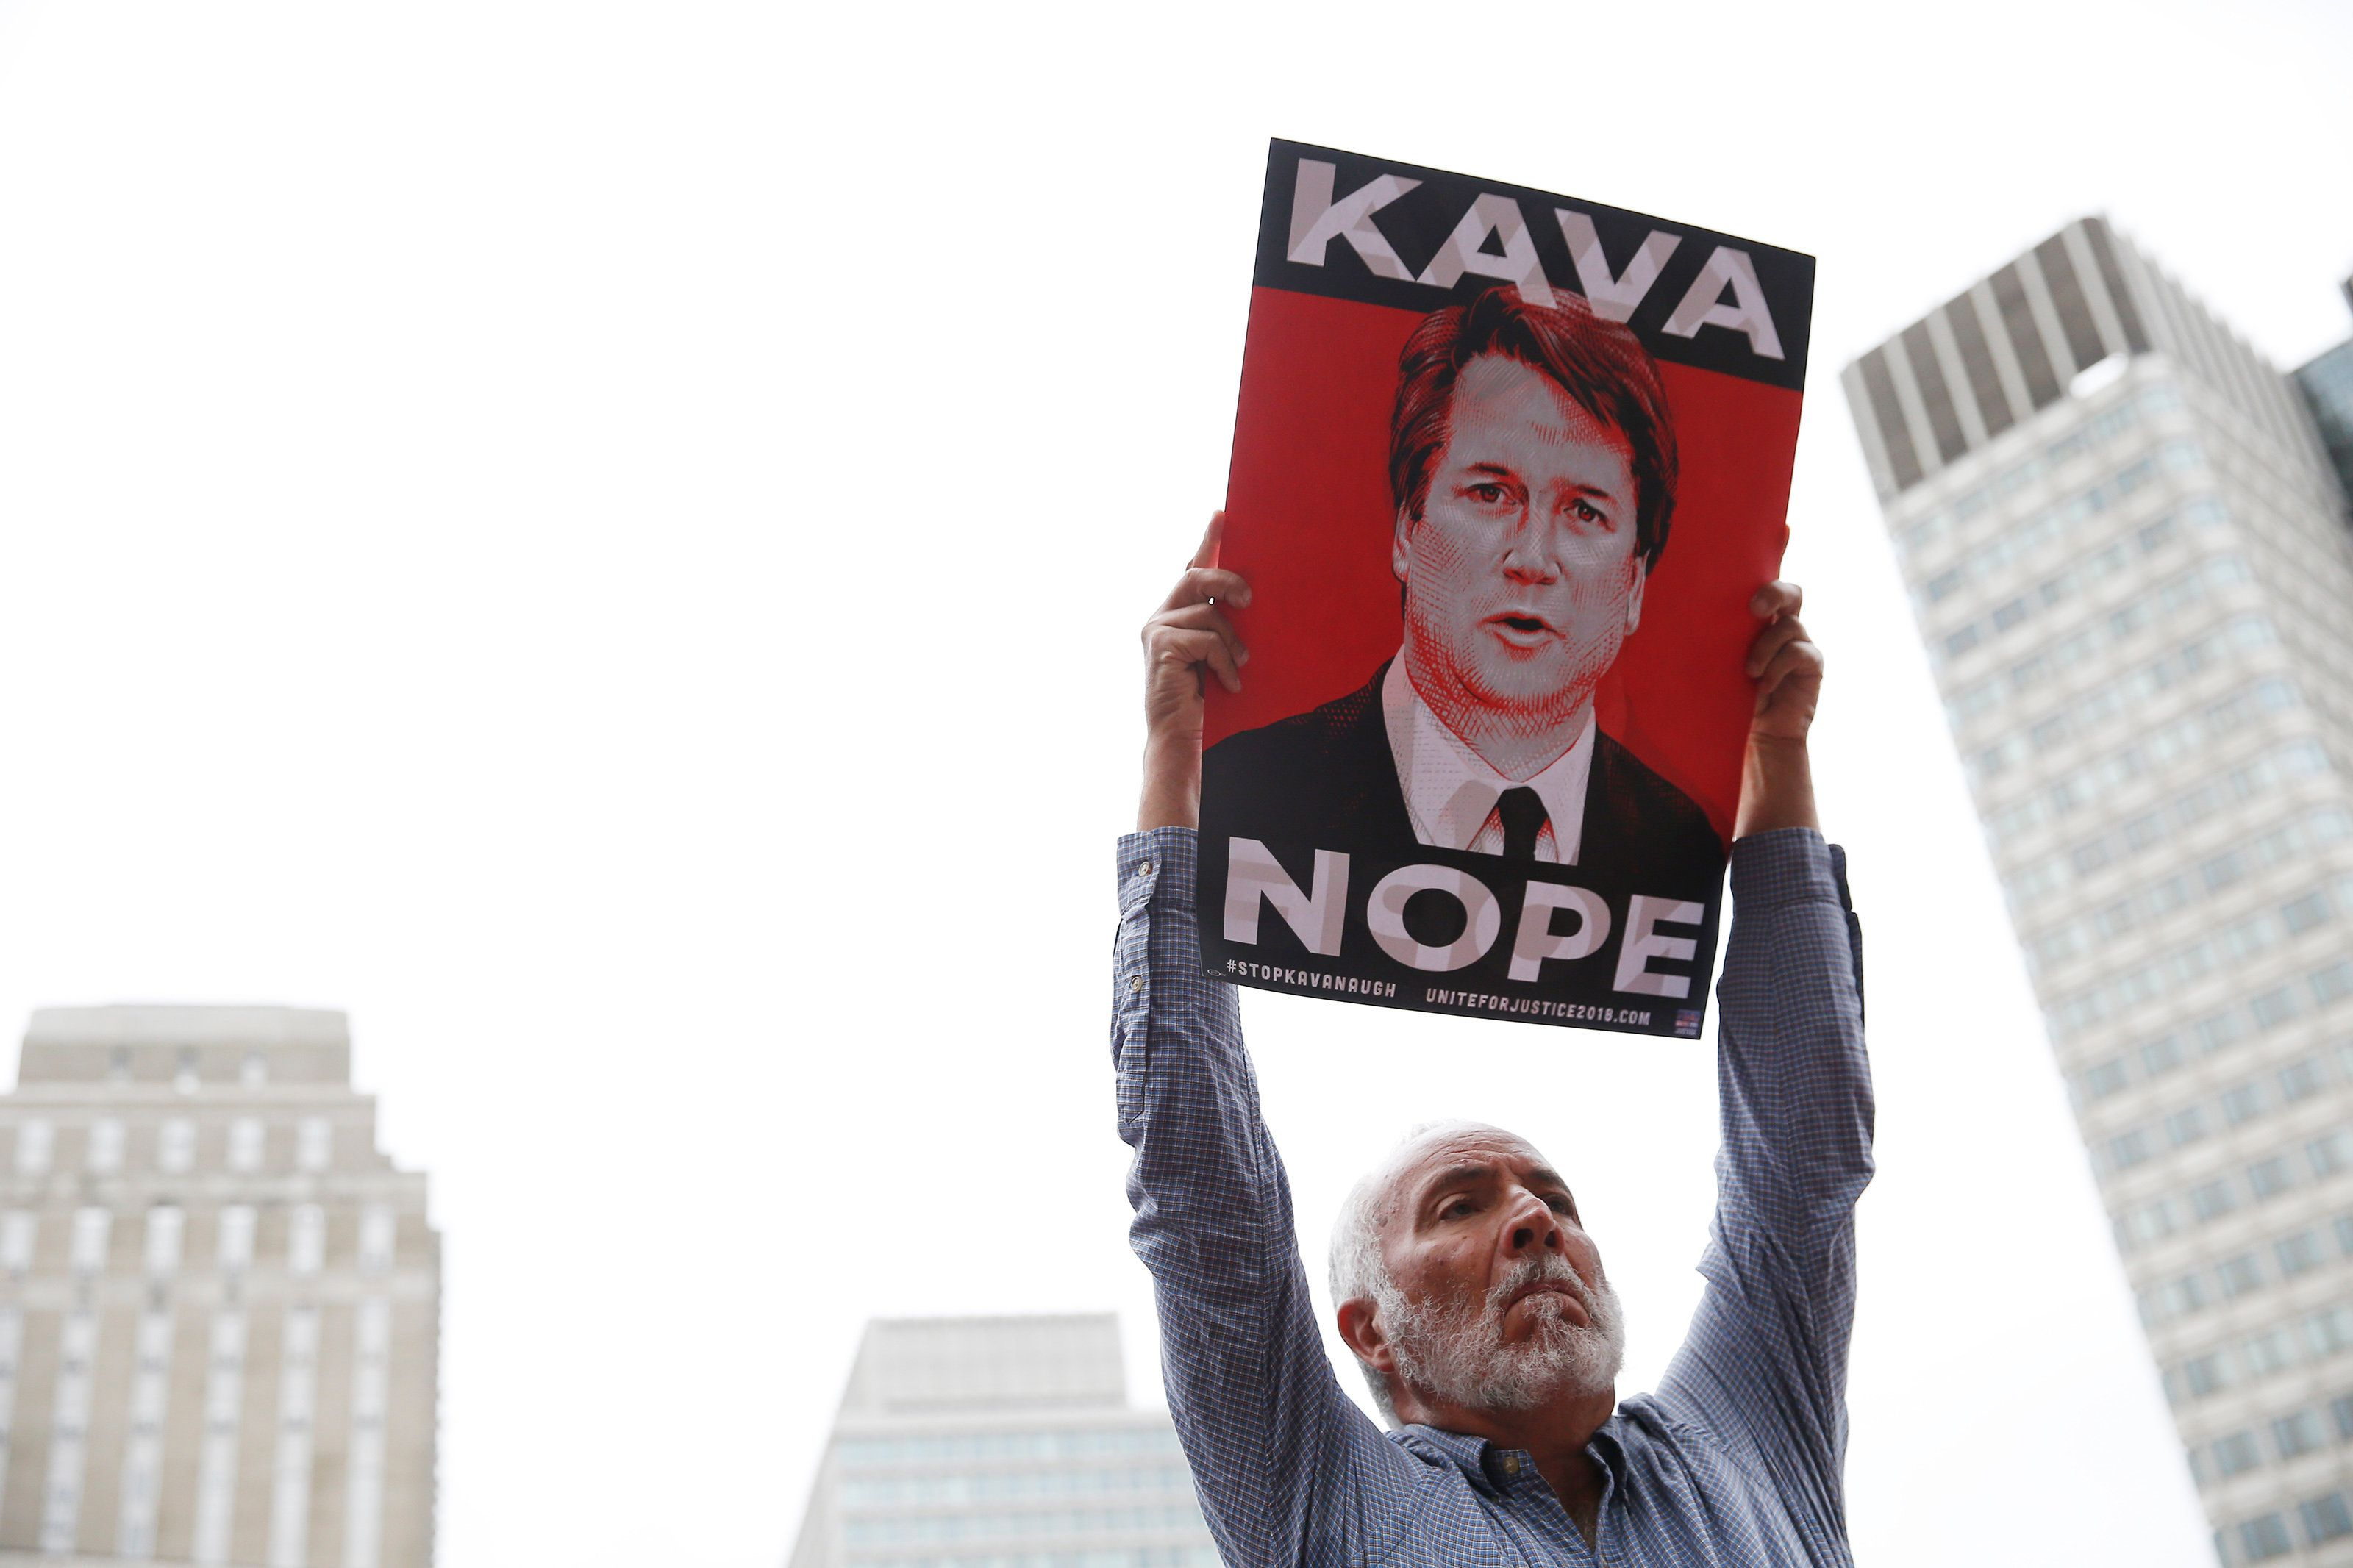 BOSTON, MA - OCTOBER 1: Gary Roden of Braintree holds a sign at a rally held to call on Senator Jeff Flake to reject Judge Brett Kavanaugh's nomination to the Supreme Court. The rally was held outside of City Hall in Boston ahead of Flake's appearance at Forbes Under 30 Summit on Oct. 1, 2018. (Photo by Jessica Rinaldi/The Boston Globe via Getty Images)